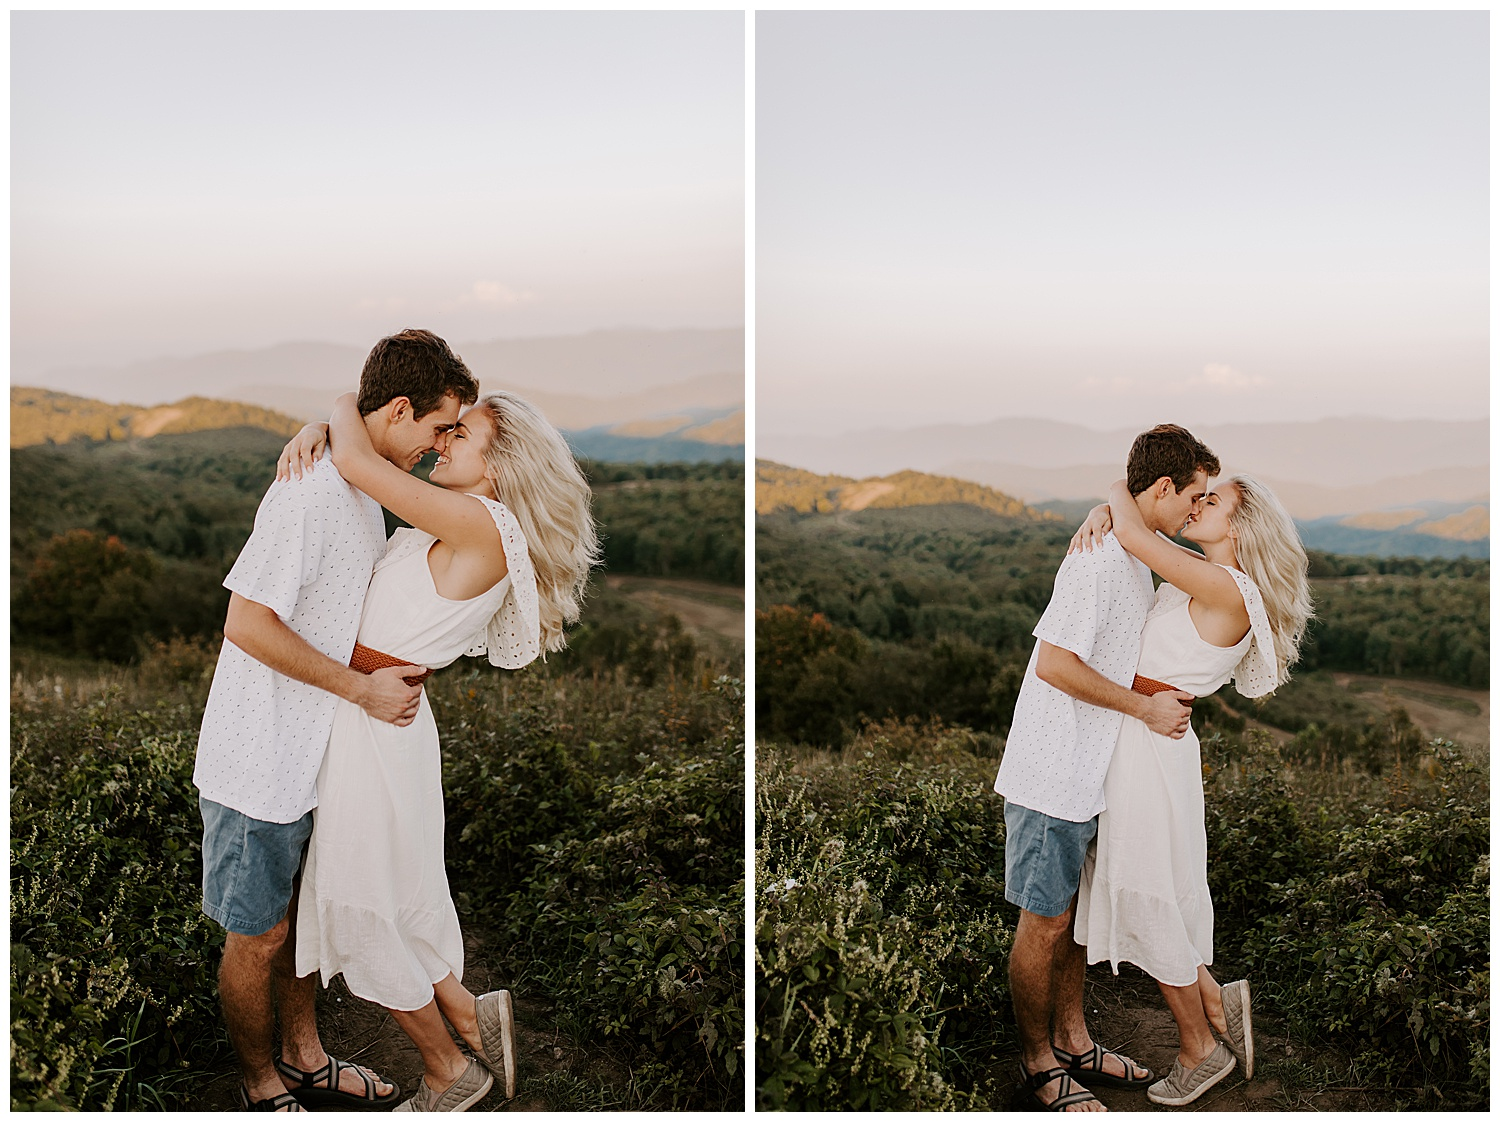 HANNAH_NICK_MAXPATCH_ENGAGEMENT2019-09-05_0002.jpg